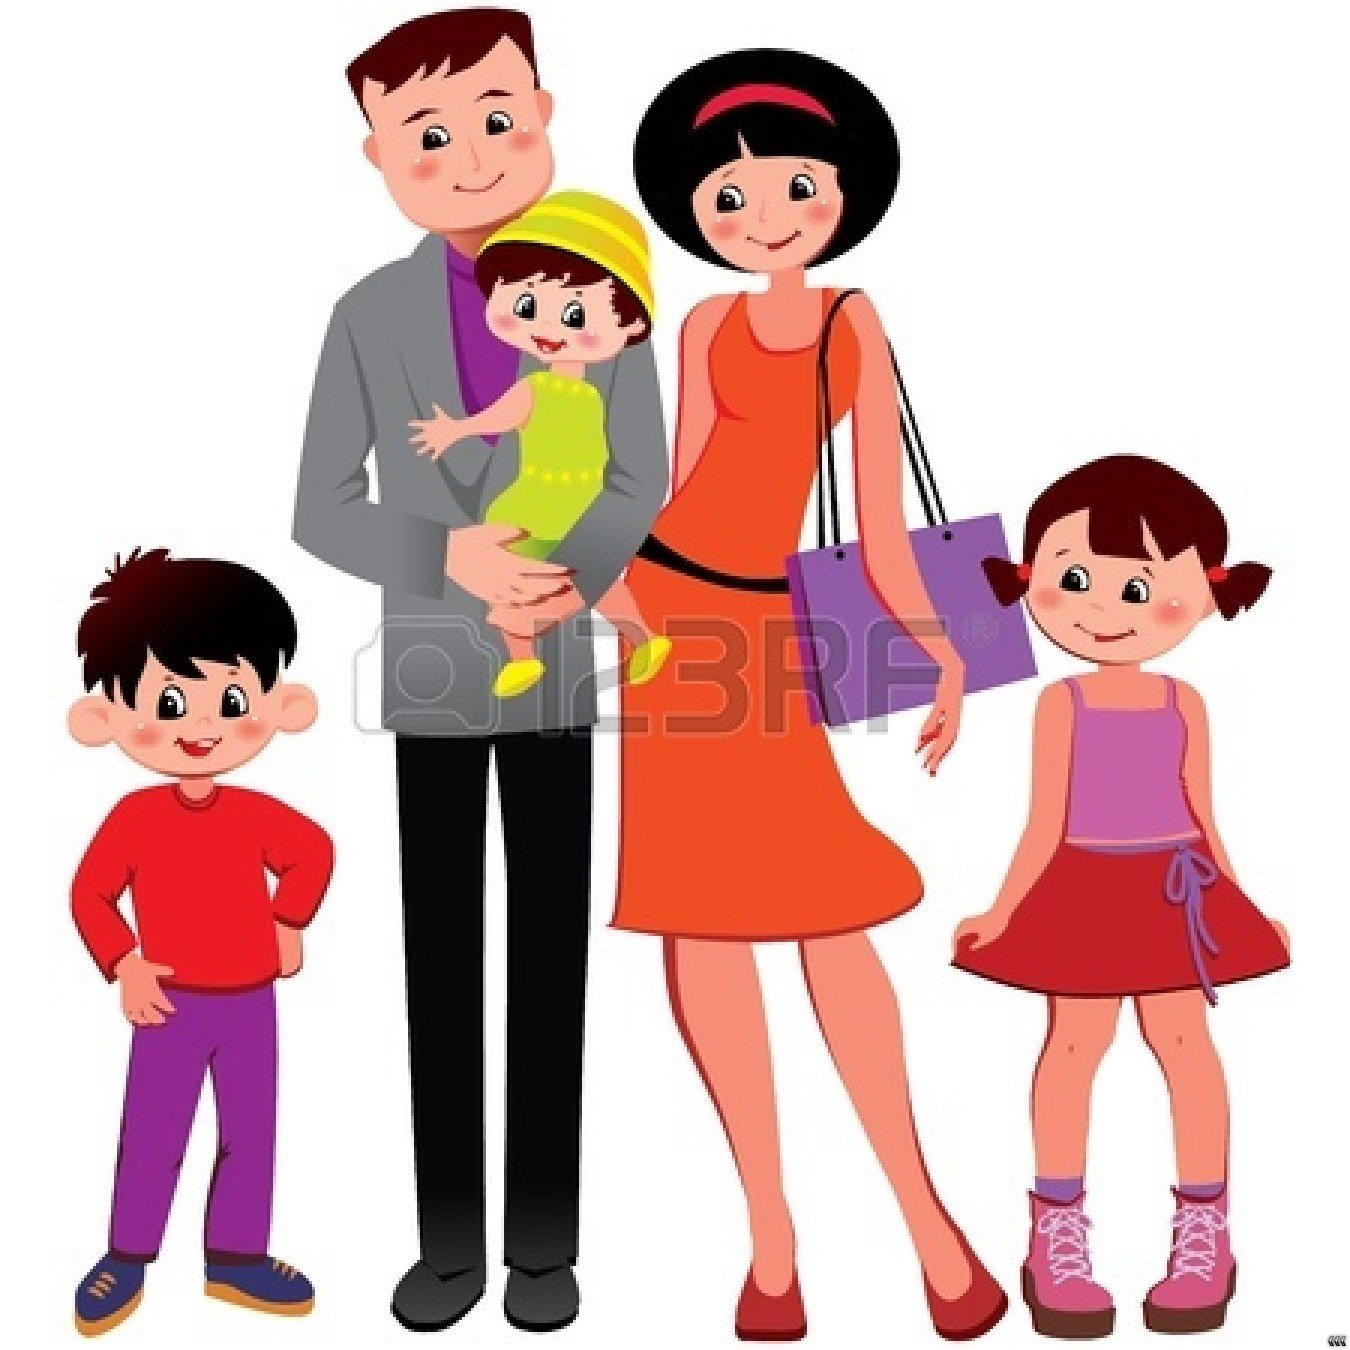 happy family clipart black and white-happy family clipart black and white-14